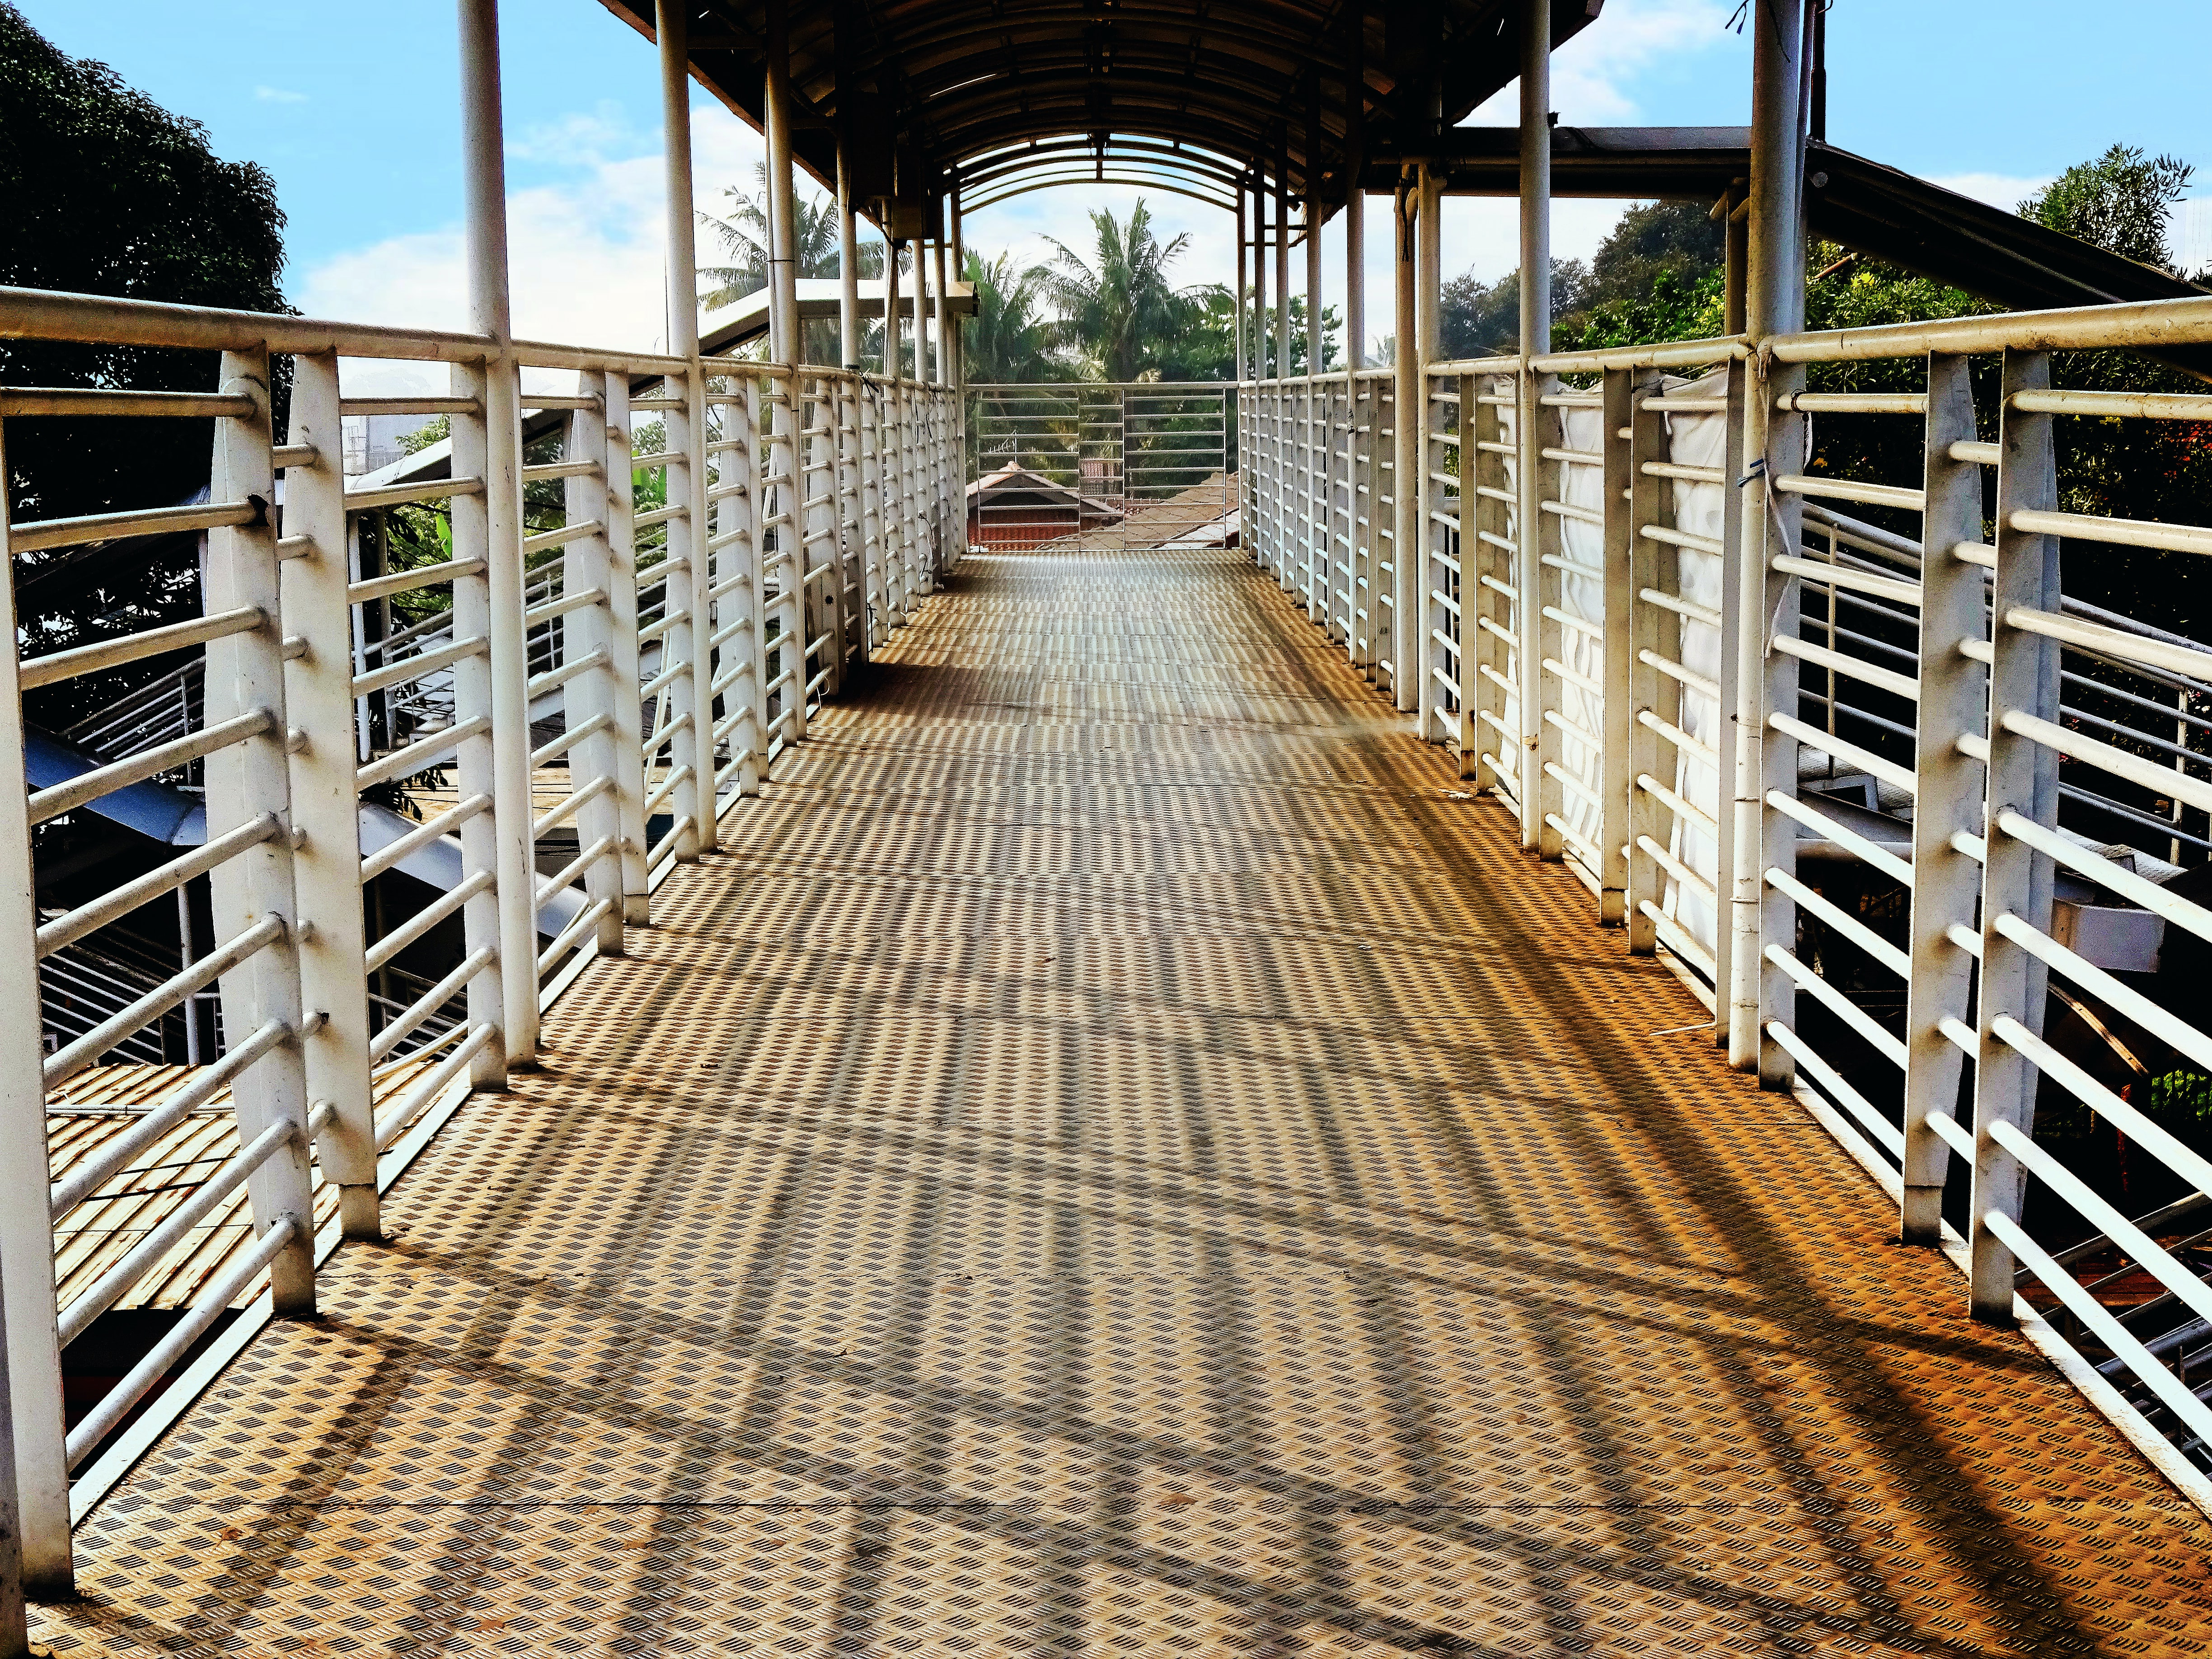 Pedestrian bridge in the south of the city